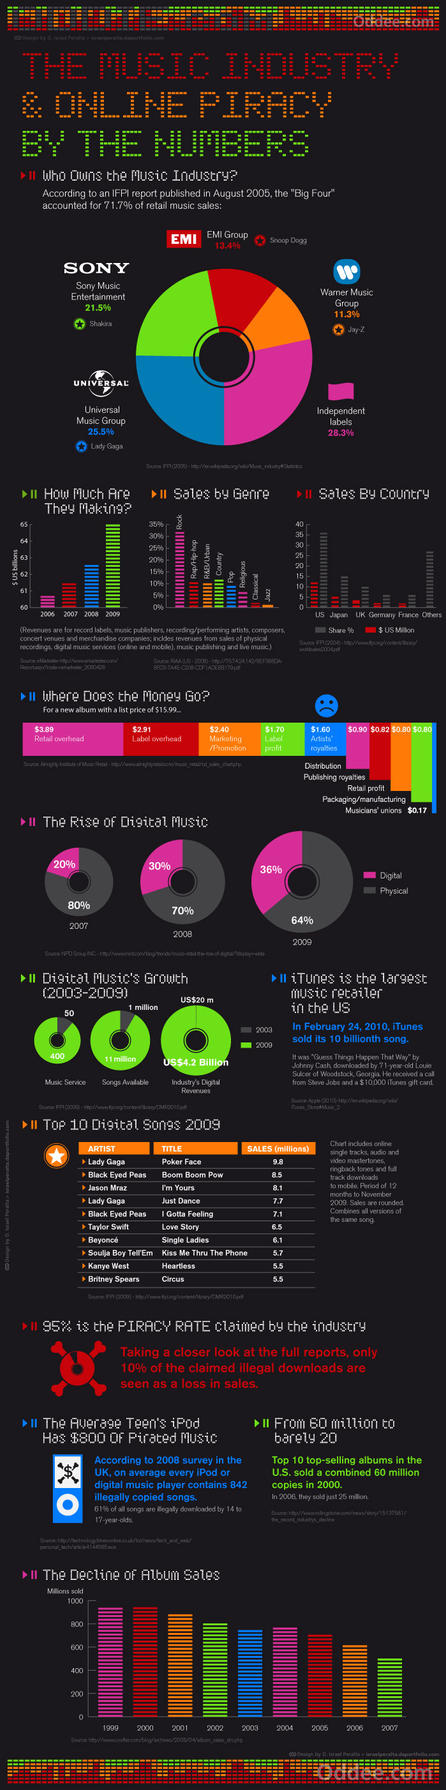 Music And Piracy Infographic by curseofthemoon